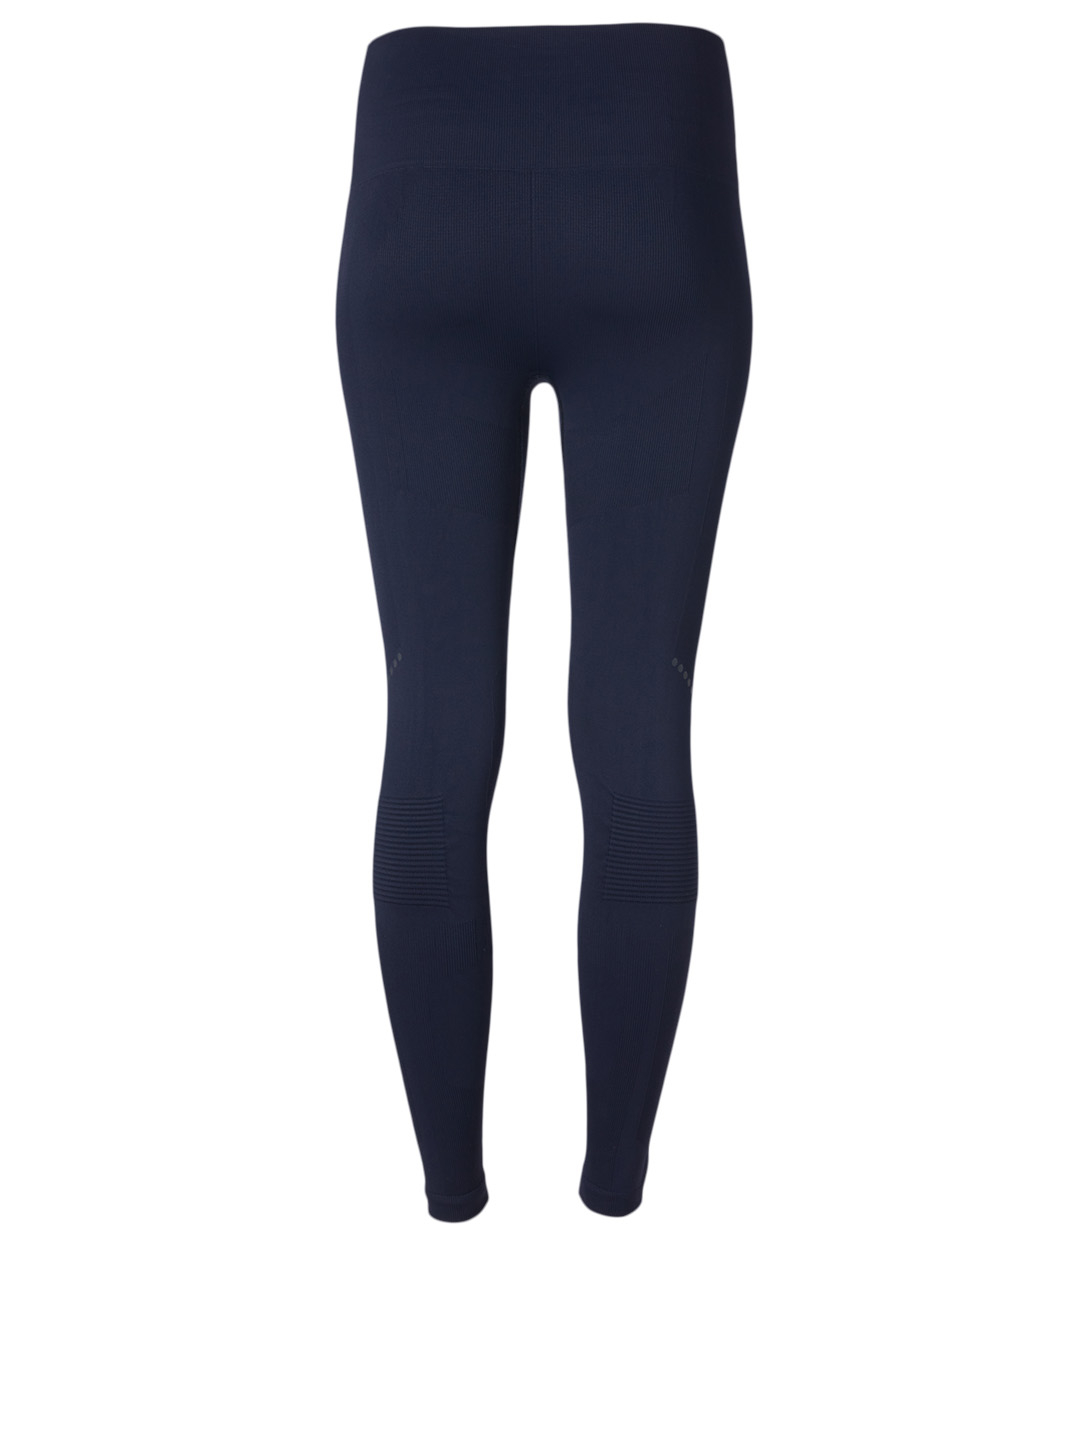 LNDR Blackout High Waisted Leggings Women's Blue